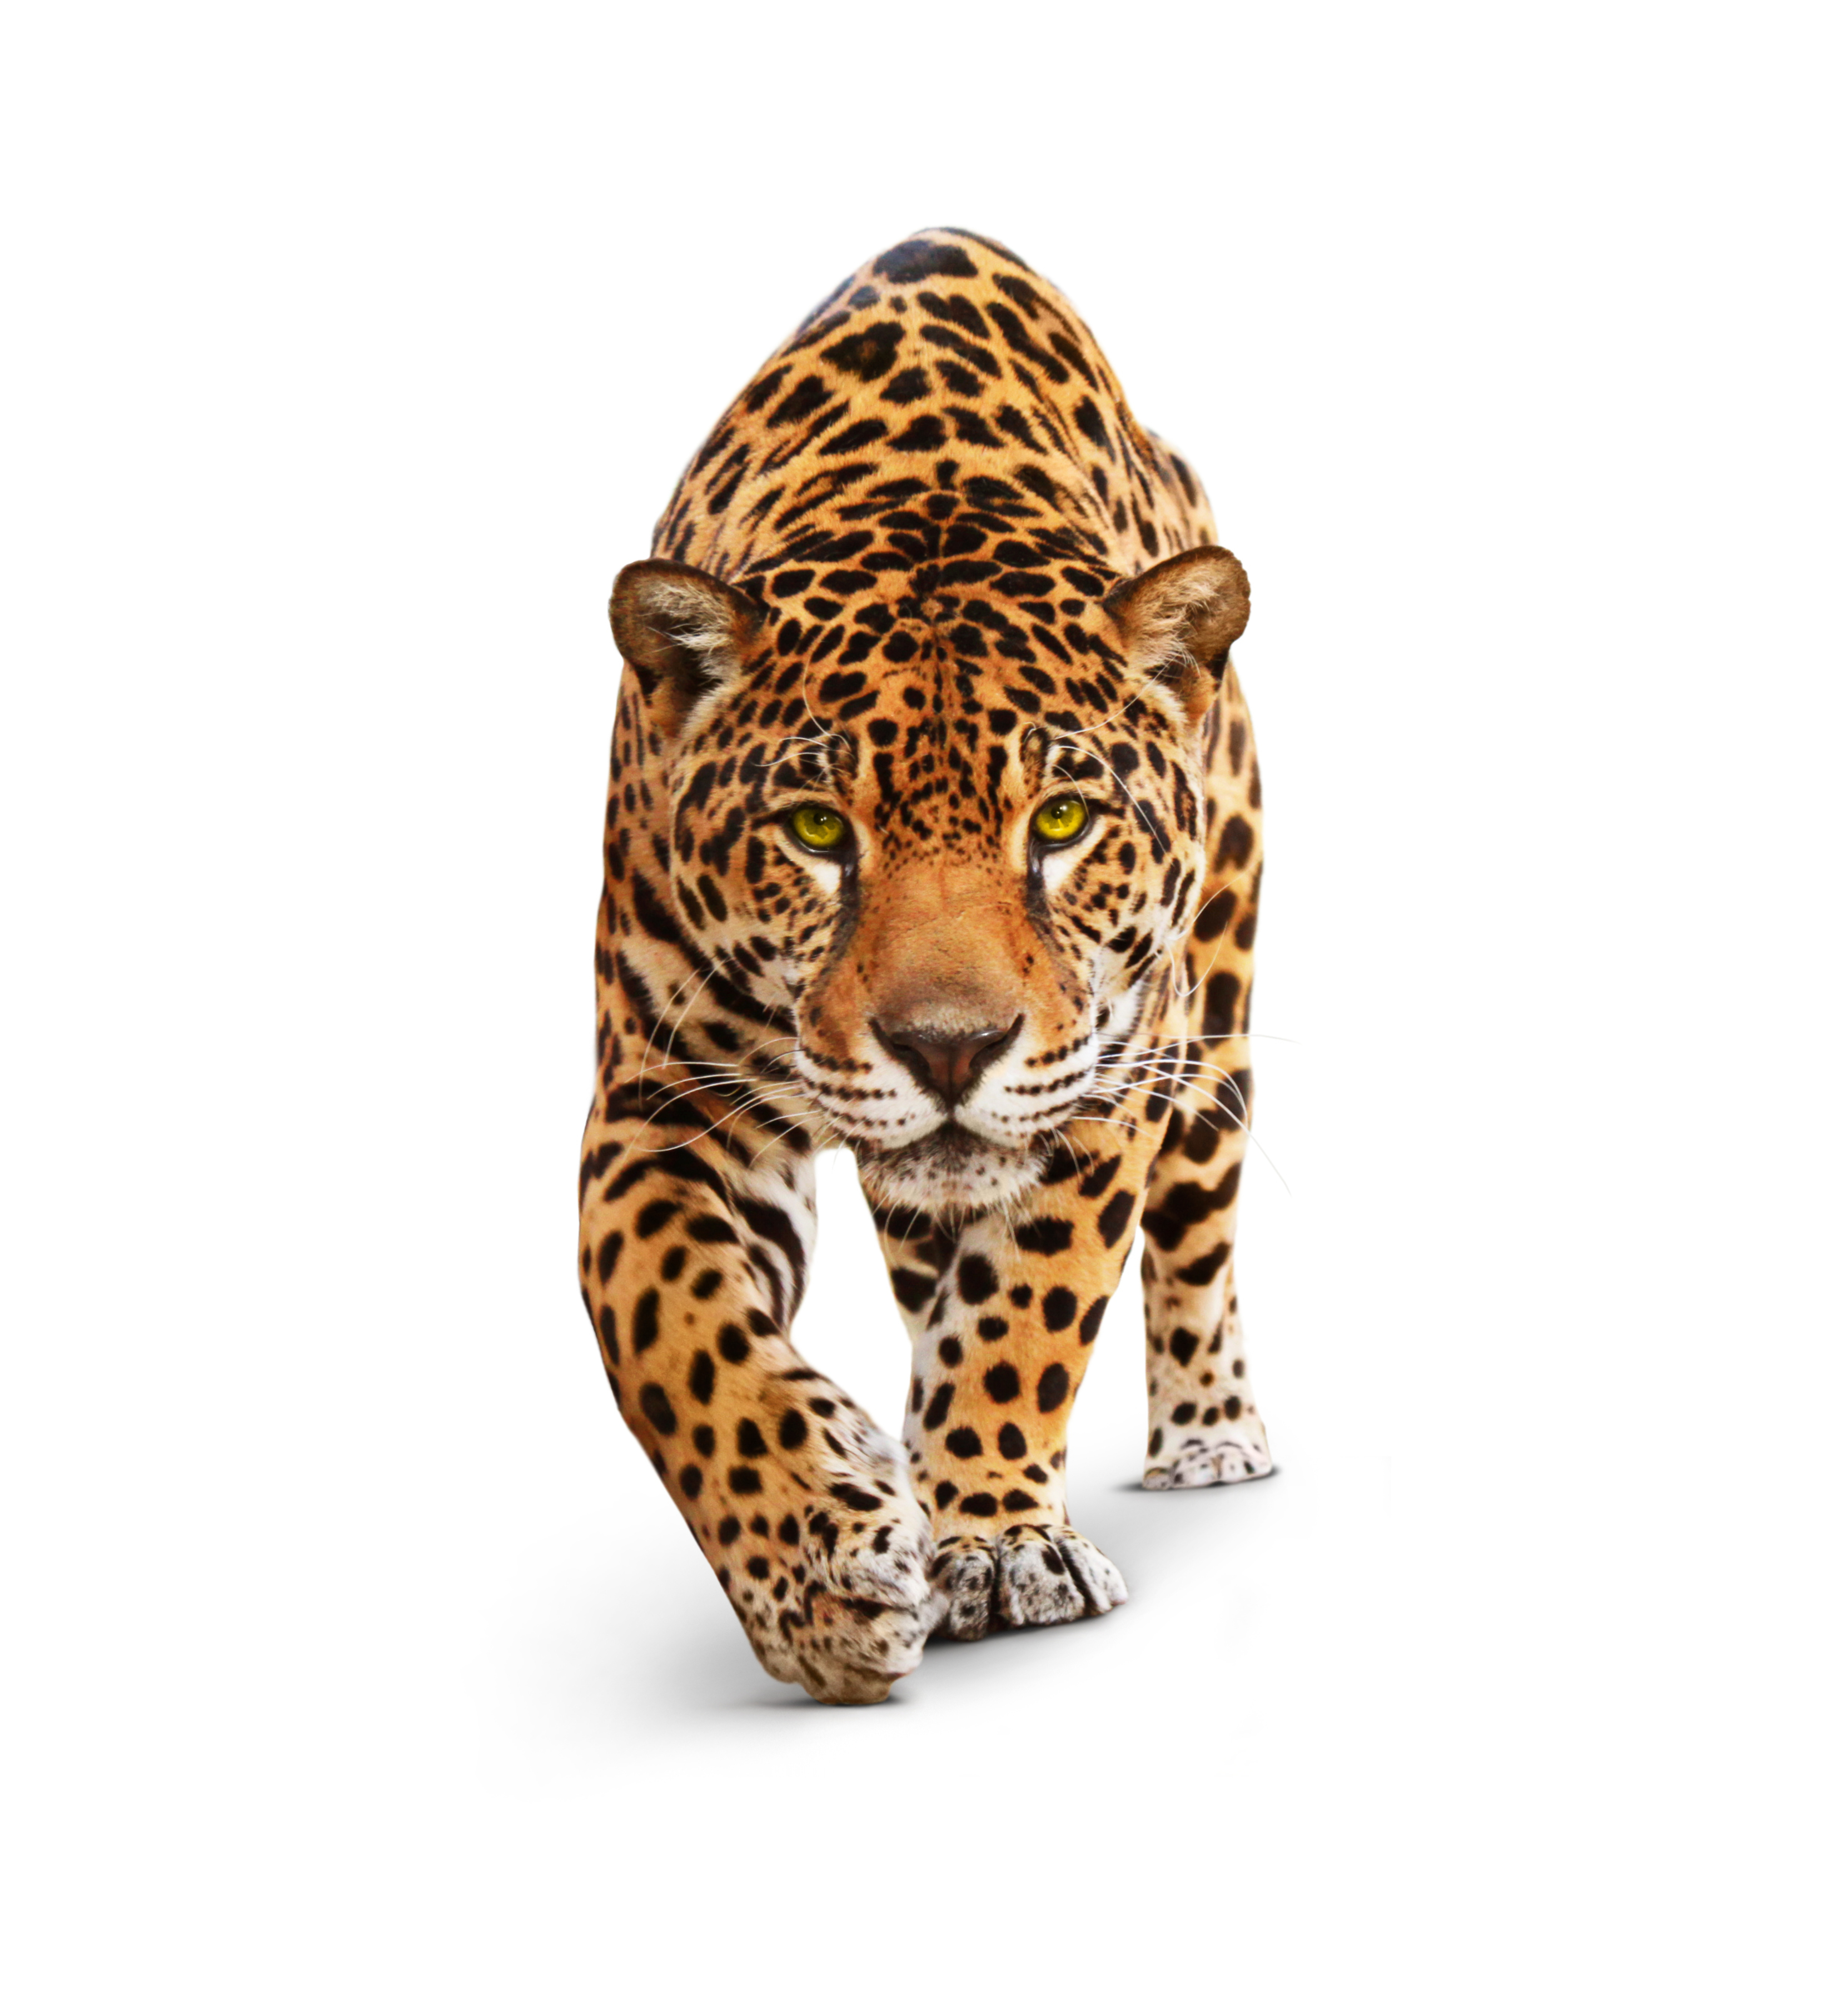 Jaguar - front view, isolated on white, shadow. Spotted wild cat - Panther, looking and walking to the camera. White background, shadow - Copyright by Ana Vasileva <br />at Dreamstime.com-ID19298415XXL